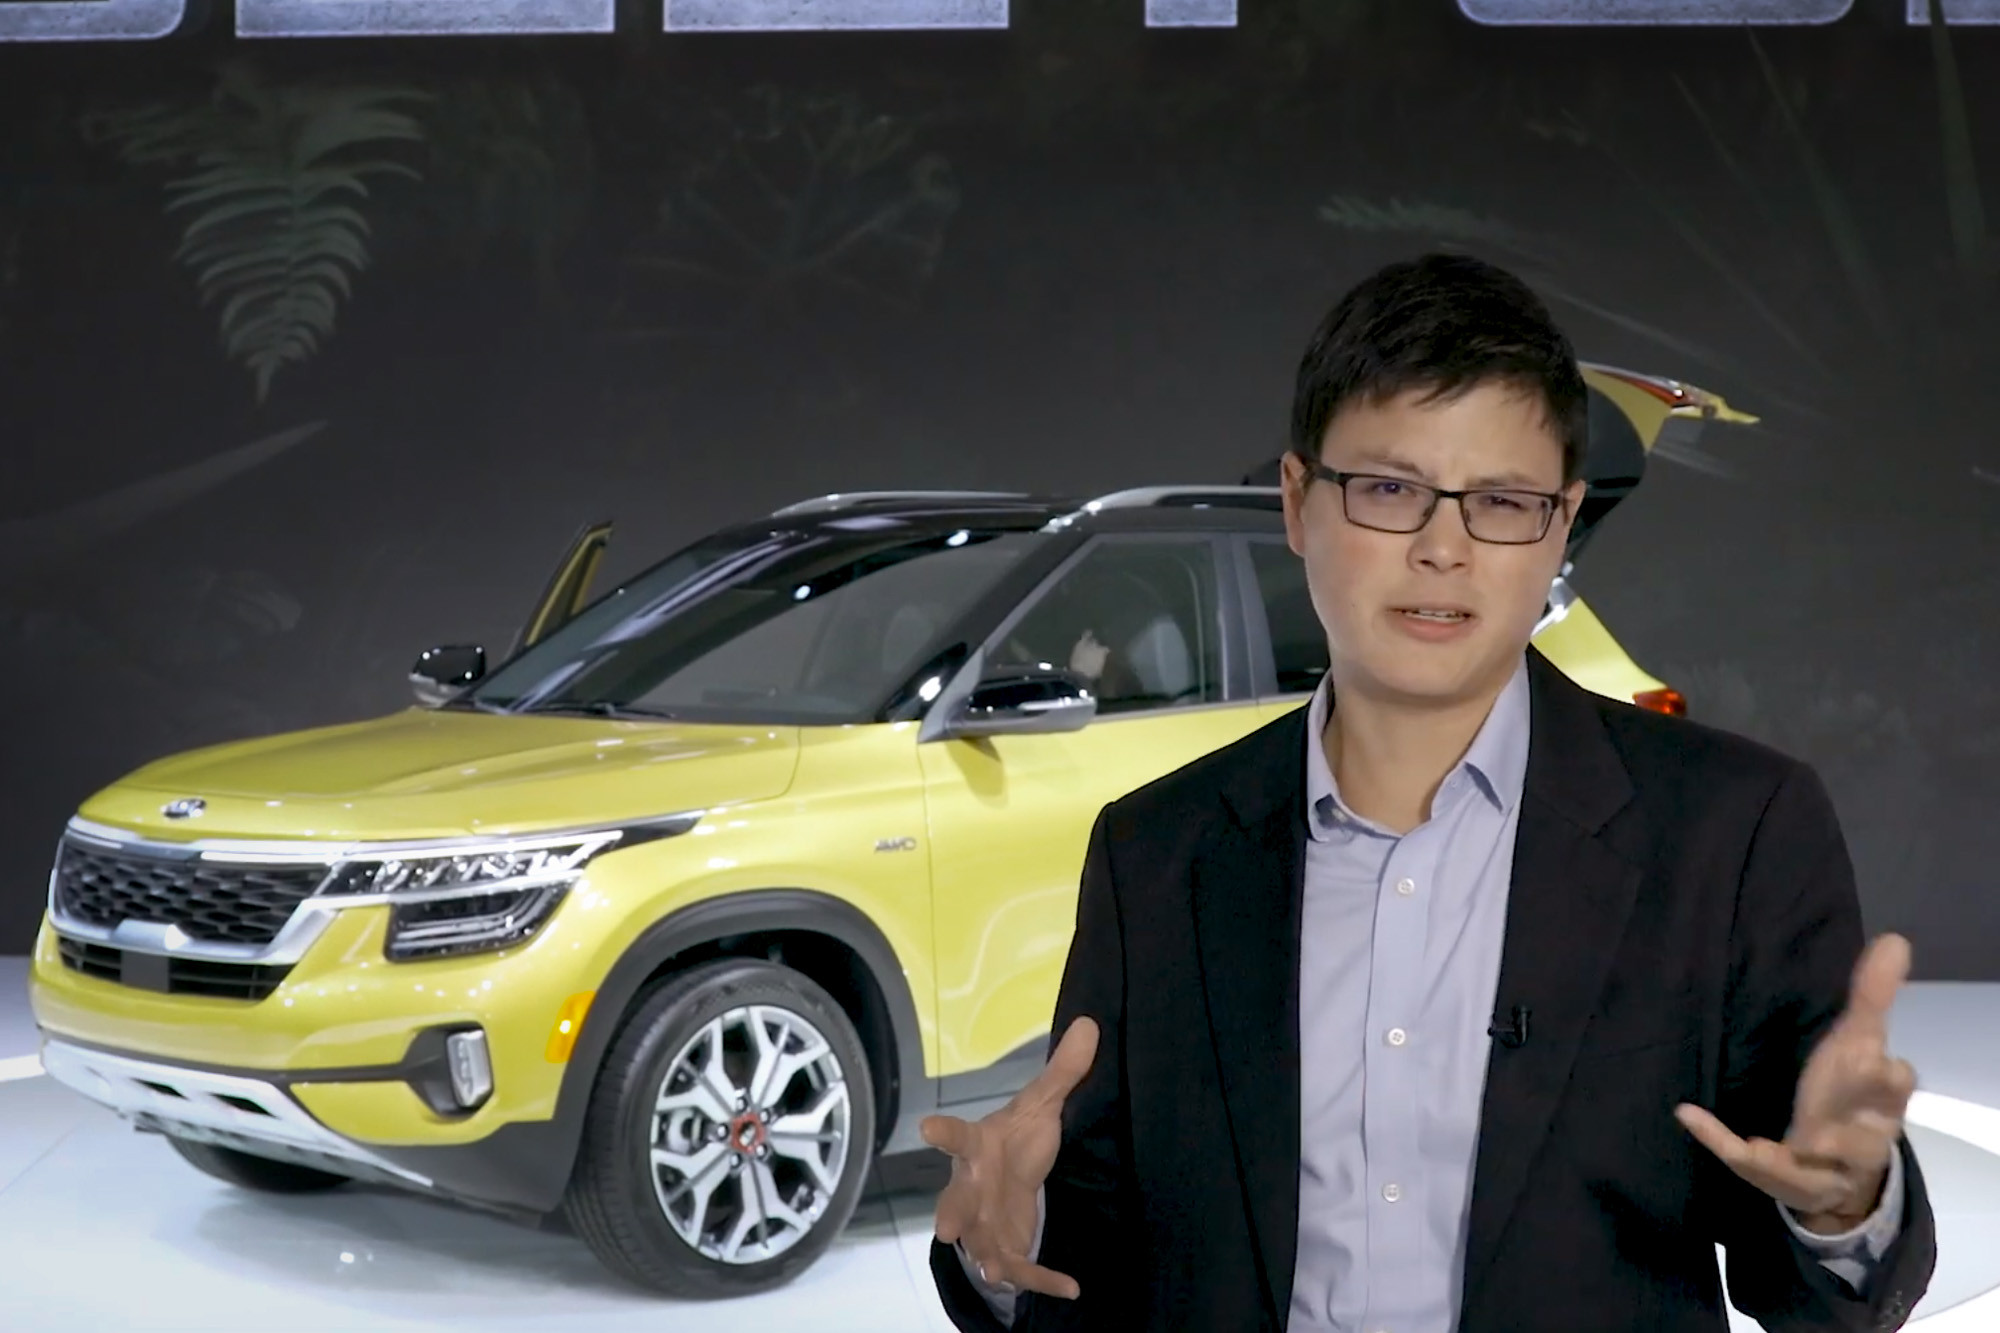 2021 Kia Seltos Video: Appealing to the Throngs